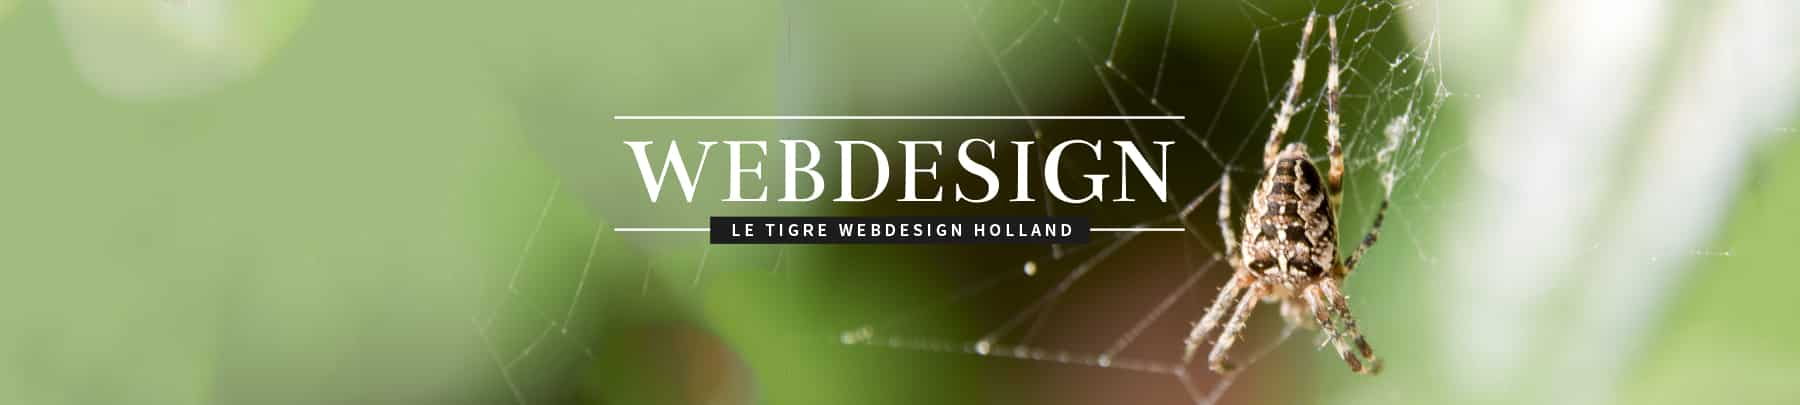 webdesign en websites maken